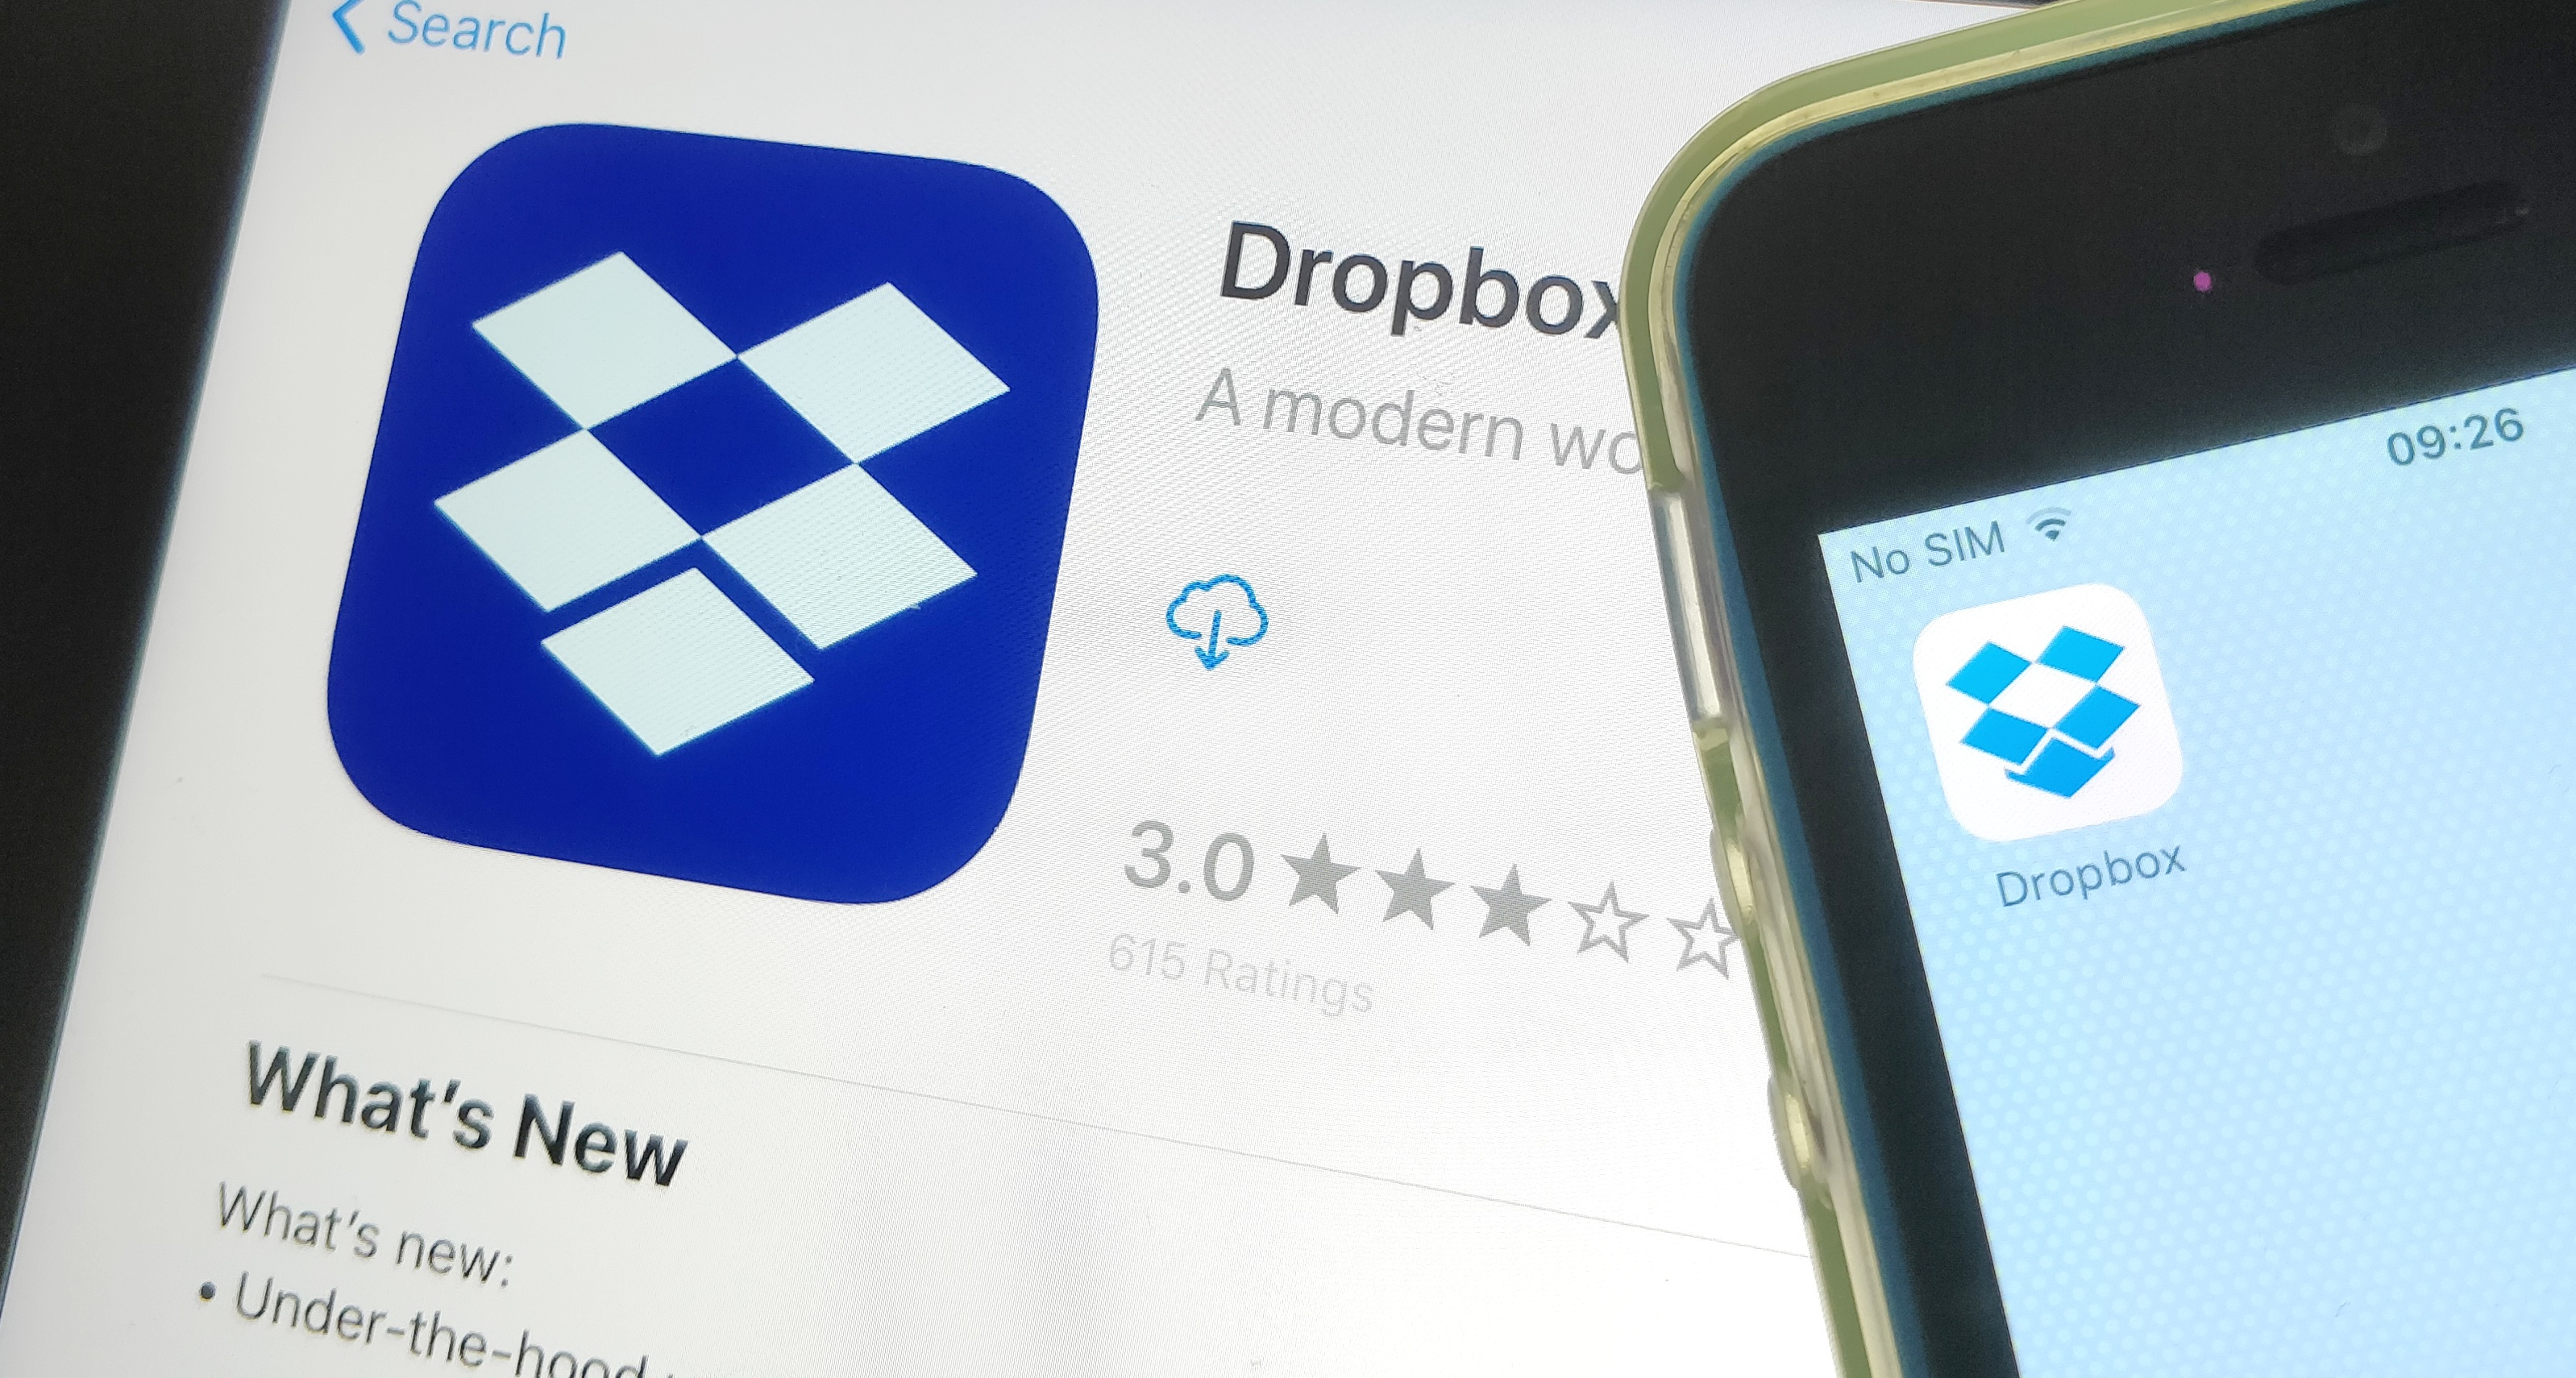 Dropbox set for $9.2bn valuation during IPO